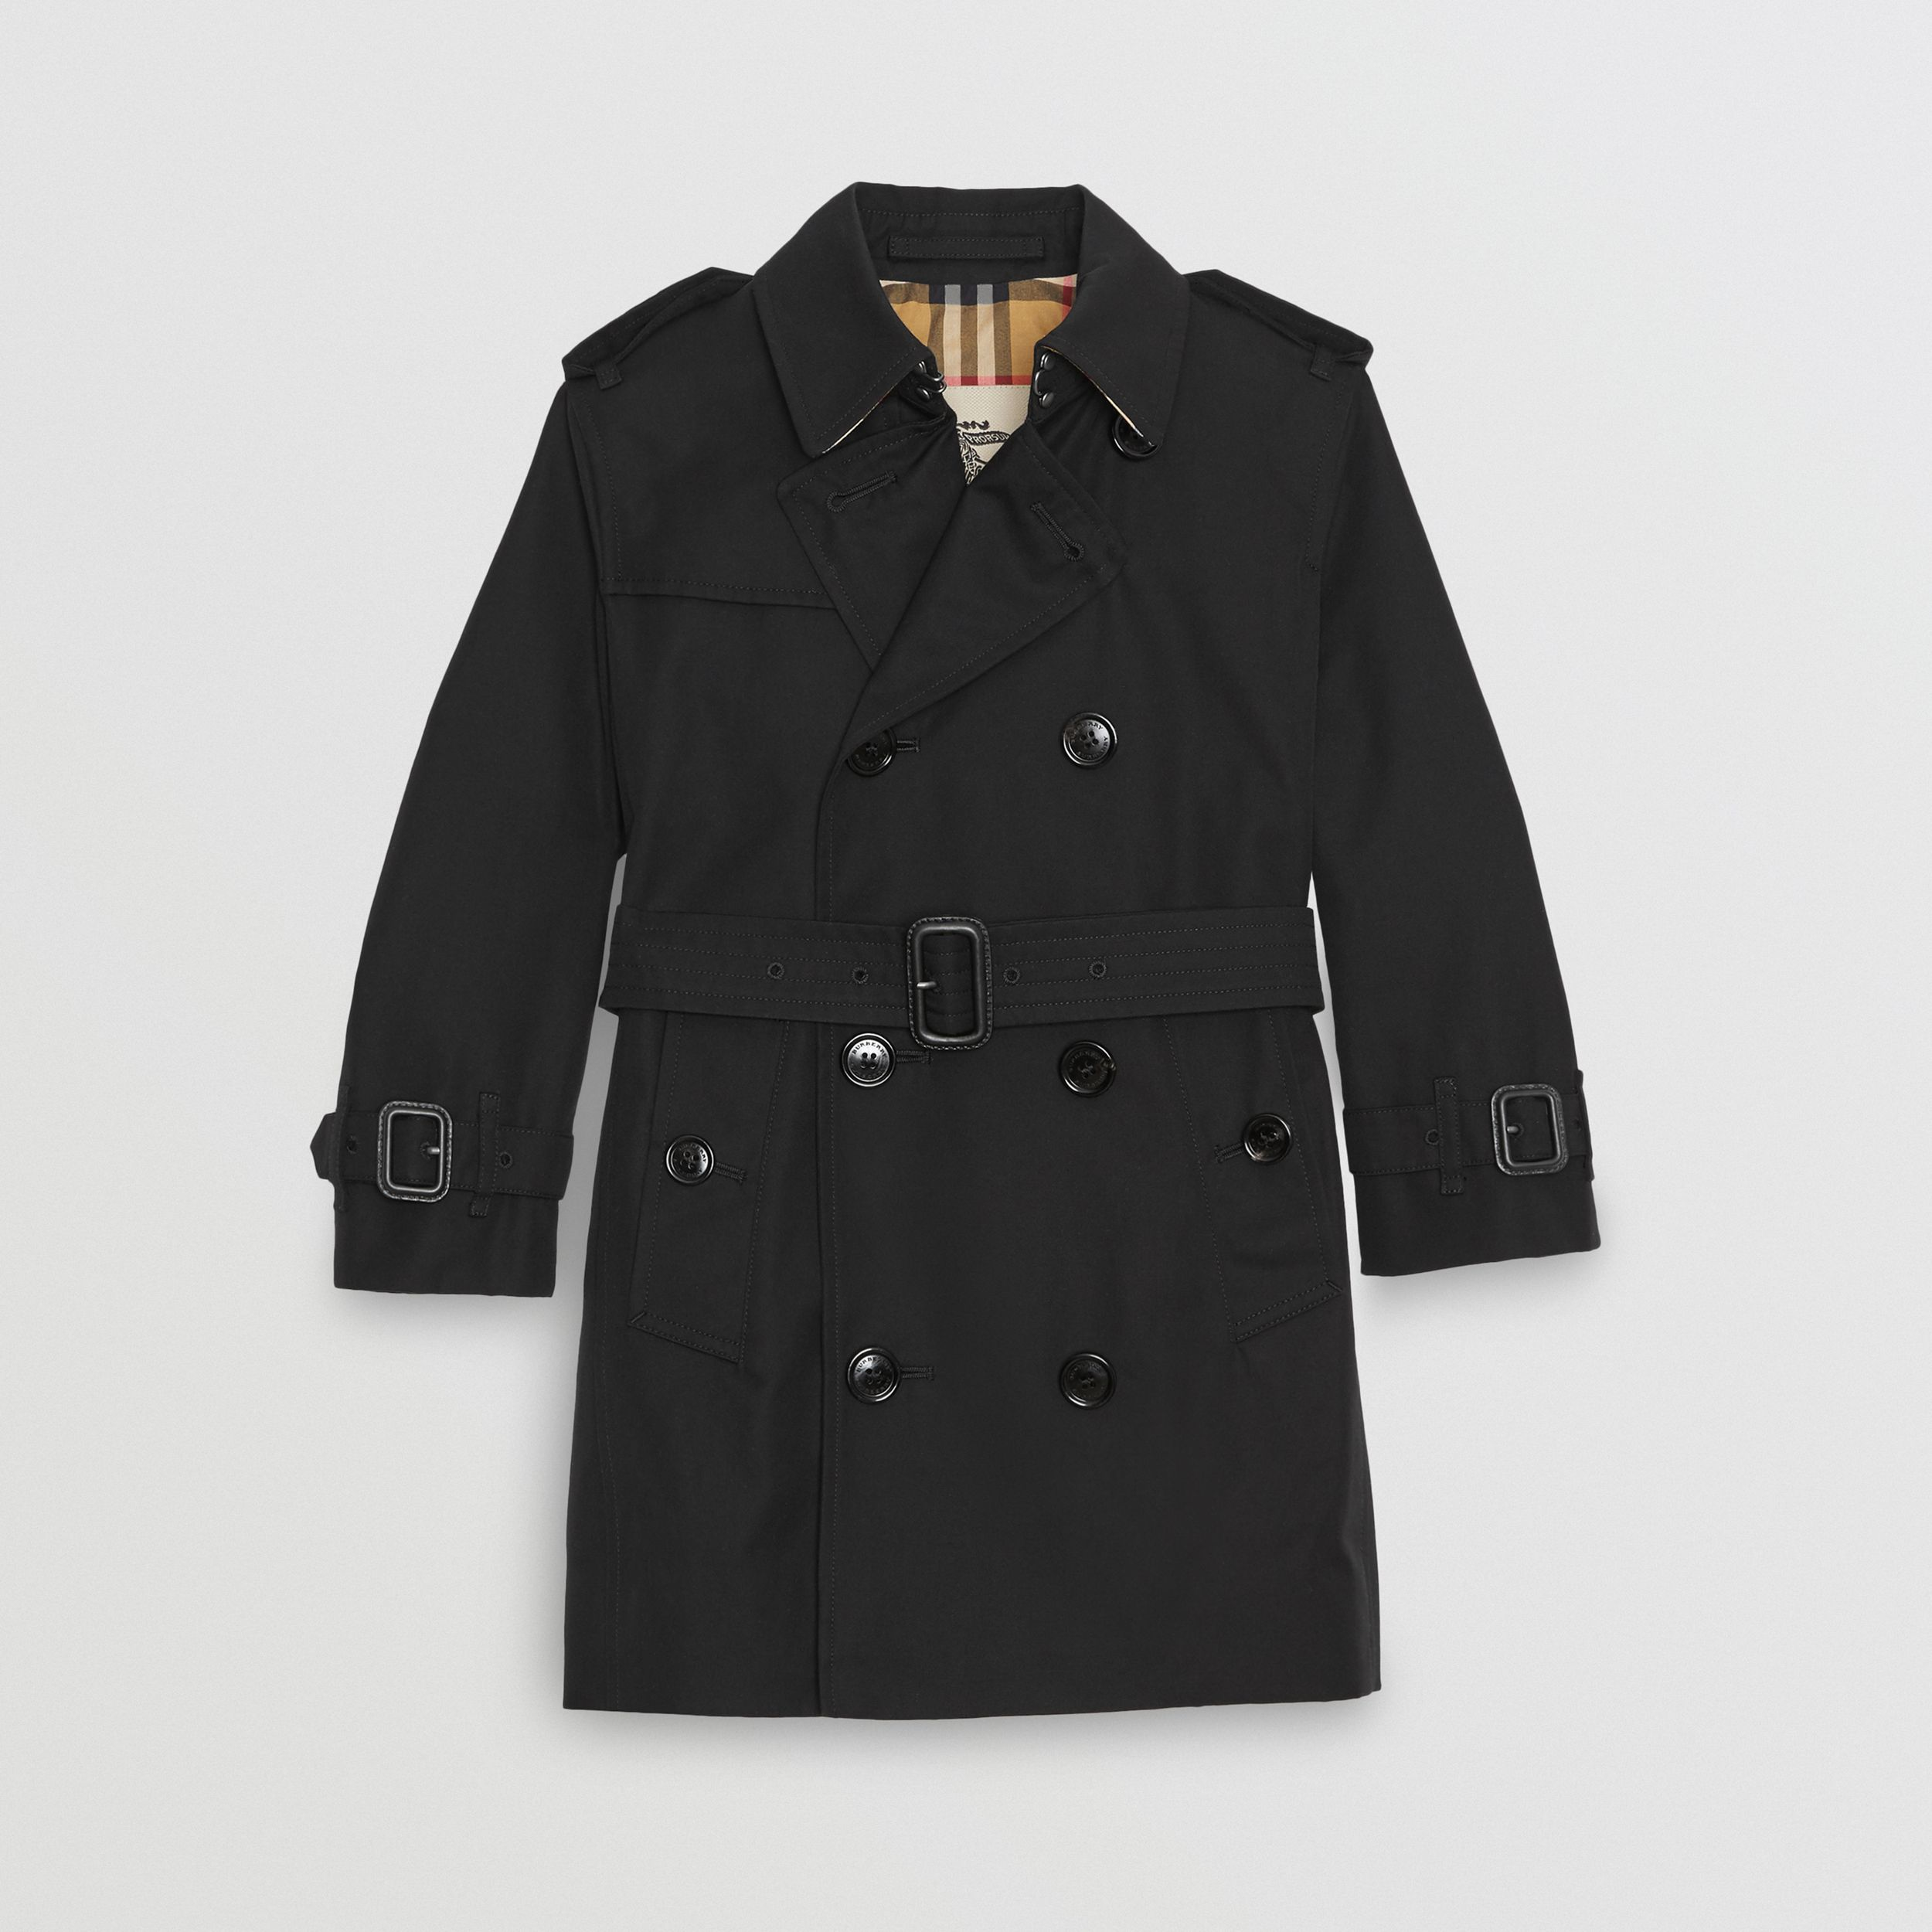 Cotton Gabardine Trench Coat in Black | Burberry - 1